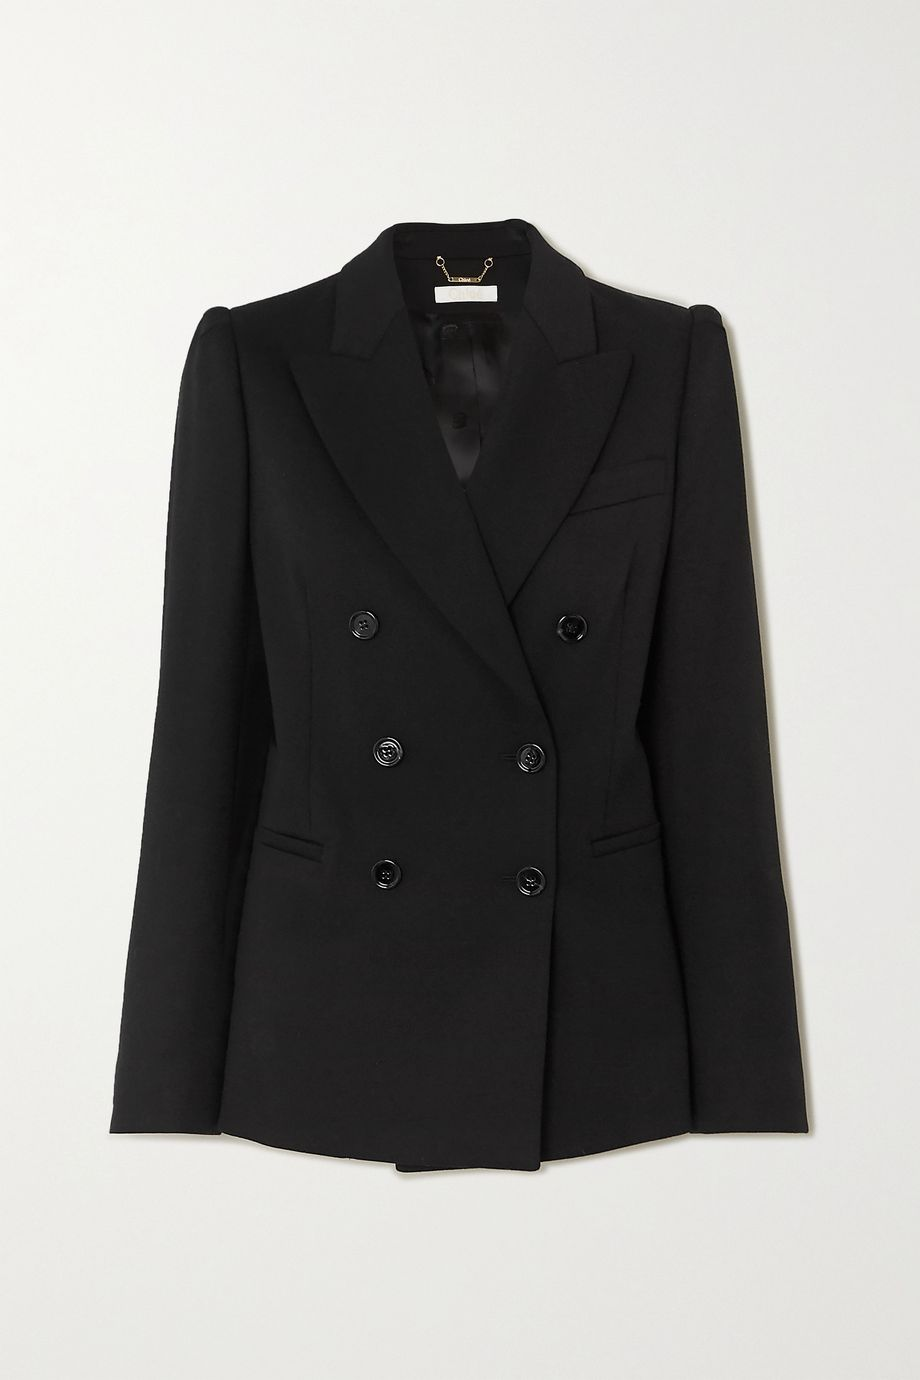 Chloé Double-breasted wool-blend blazer